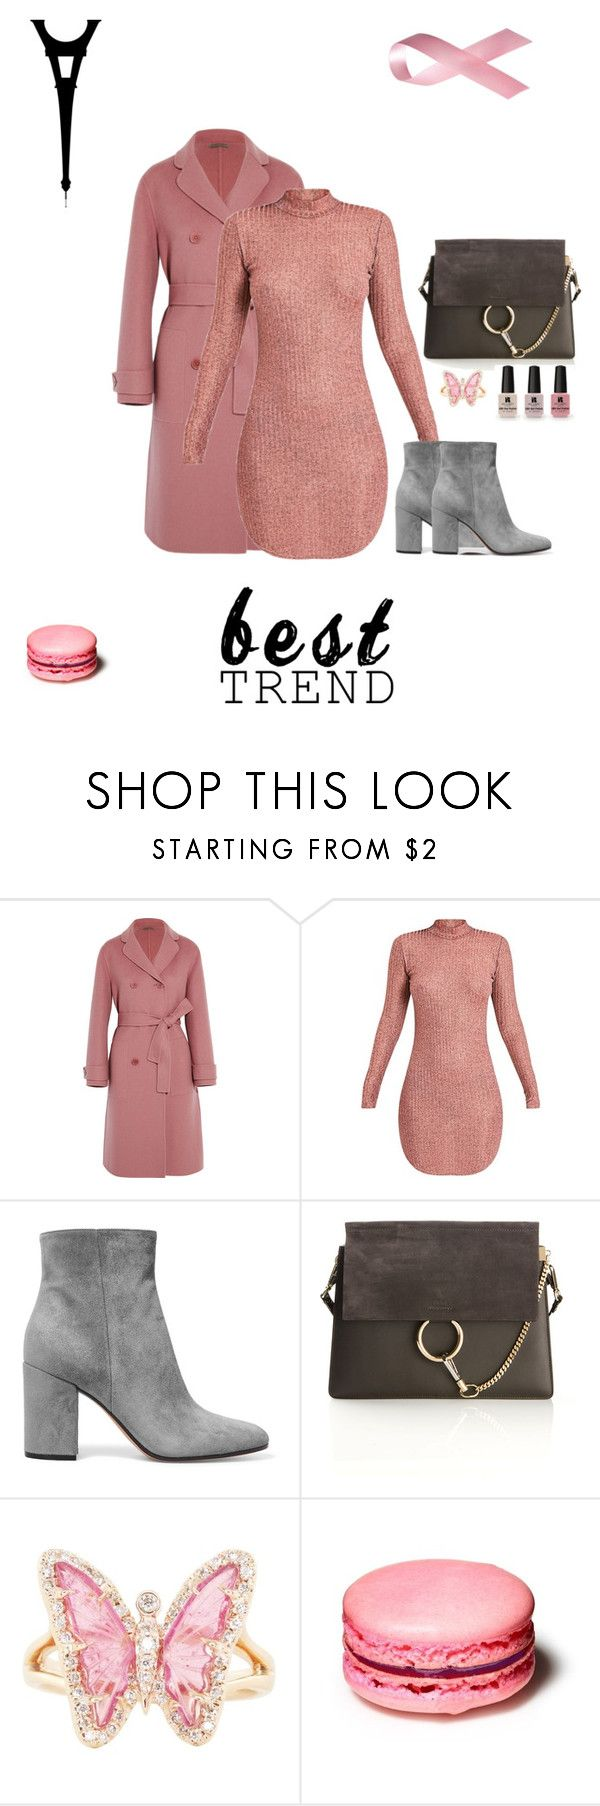 """#pink power"" by joe-khulan on Polyvore featuring Bottega Veneta, Gianvito Rossi, Chloé, Luna Skye and Victoria's Secret"